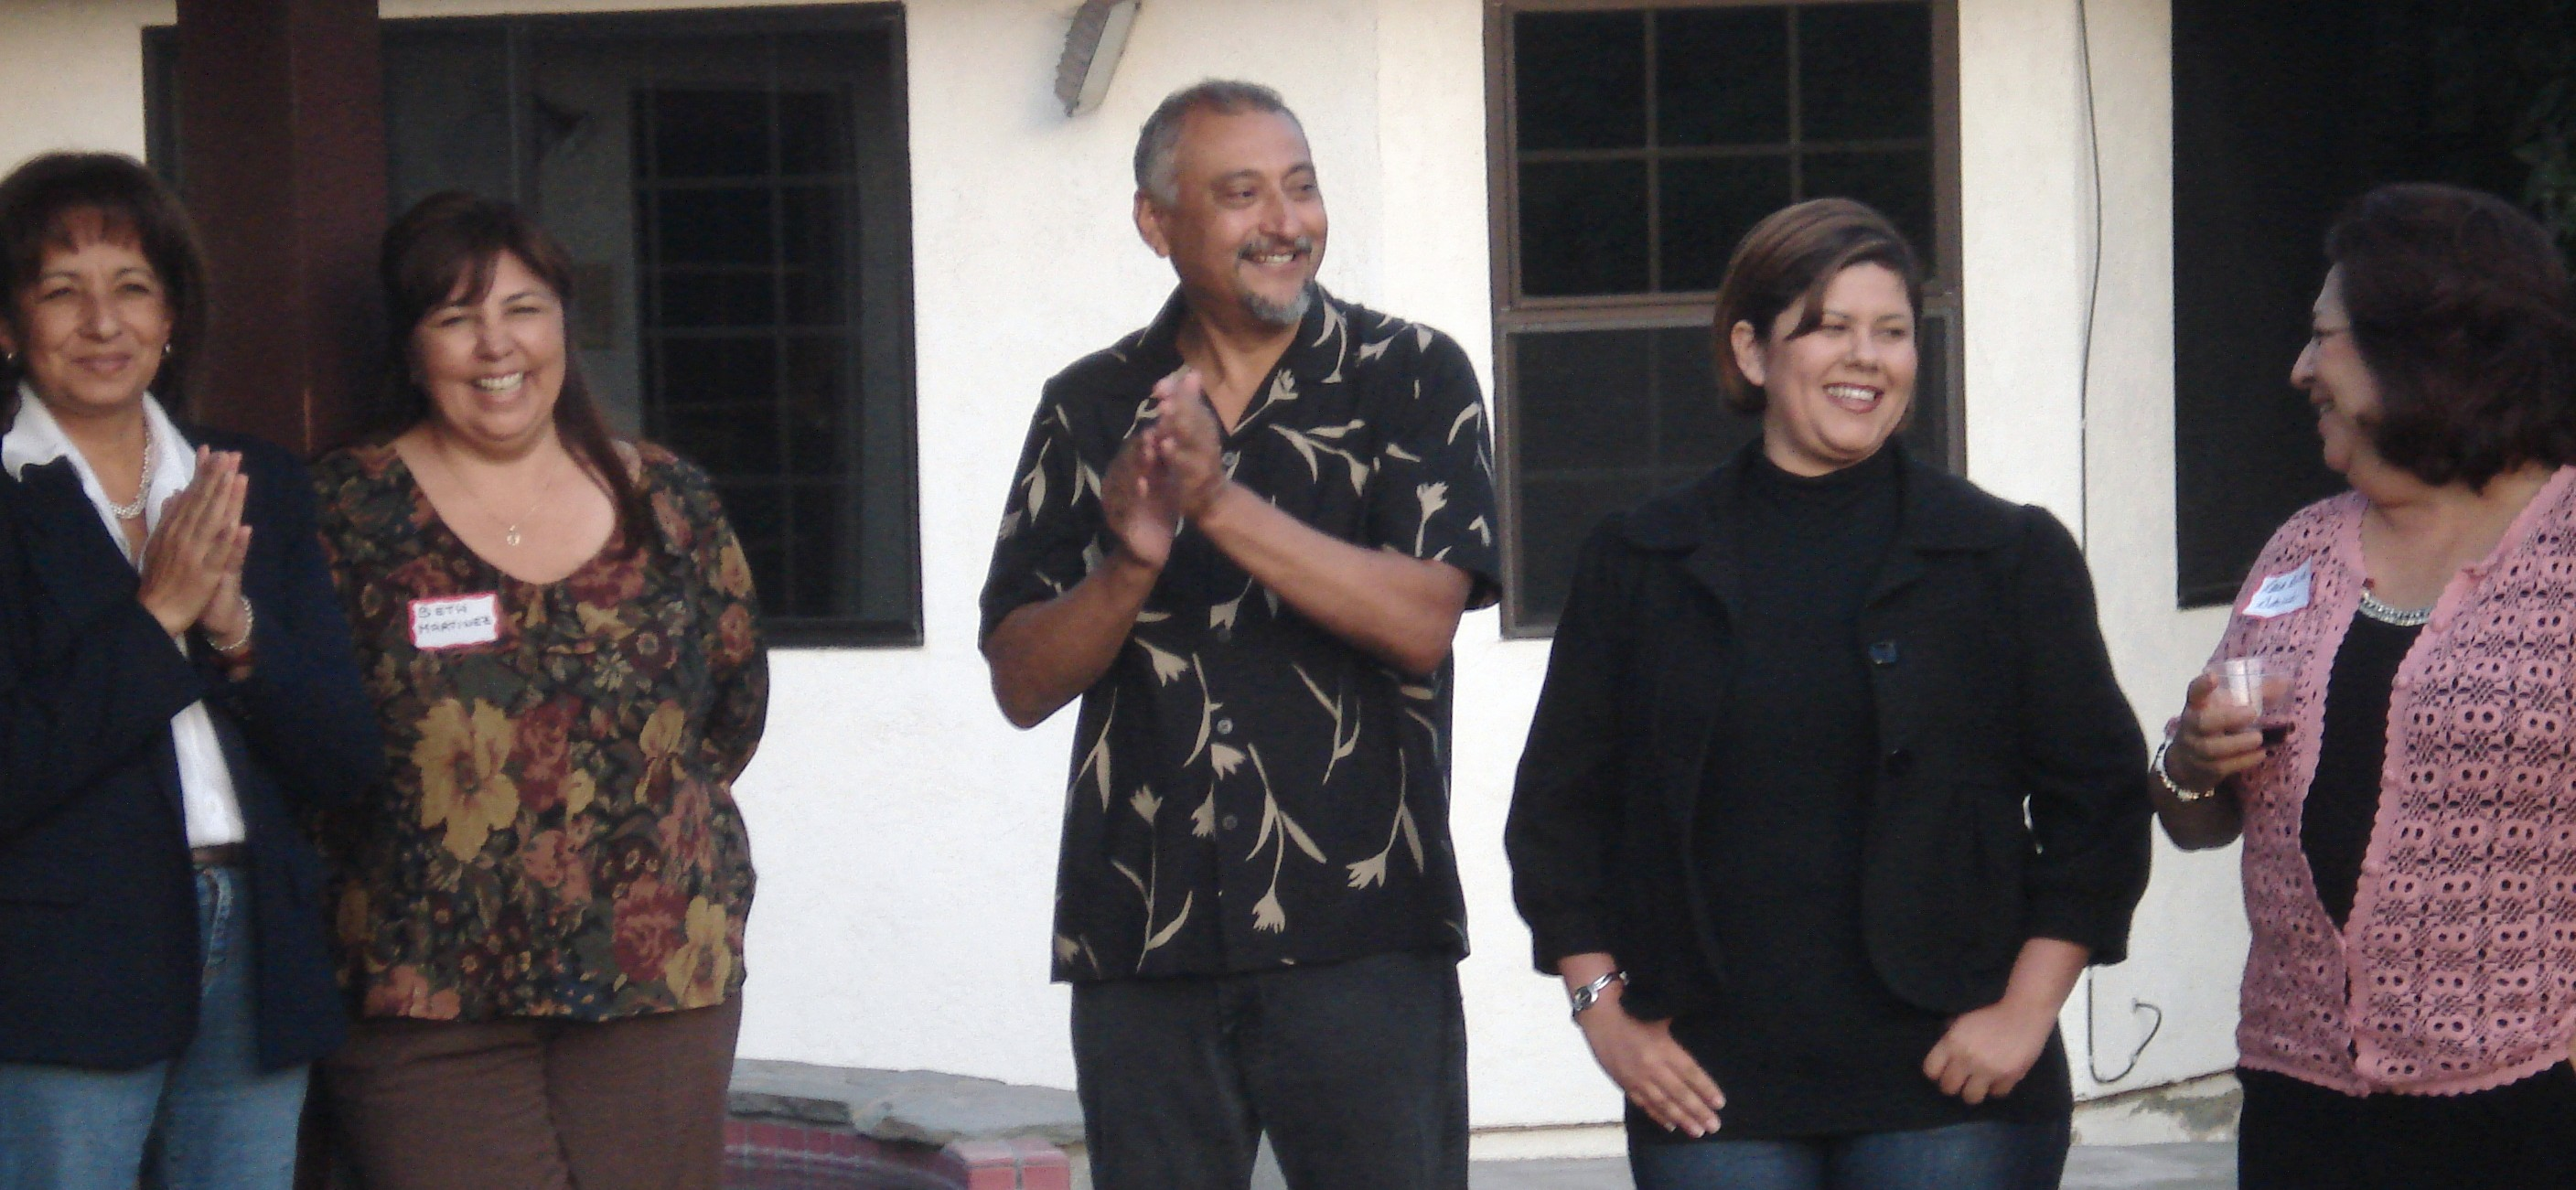 Dr. Art Lomeli had a very well-attended fundraiser at his home in Orange this evening. With the help of Rancho Santiago Community College District (RSCCD) Trustee Al Amezcua, Lomeli raised […]